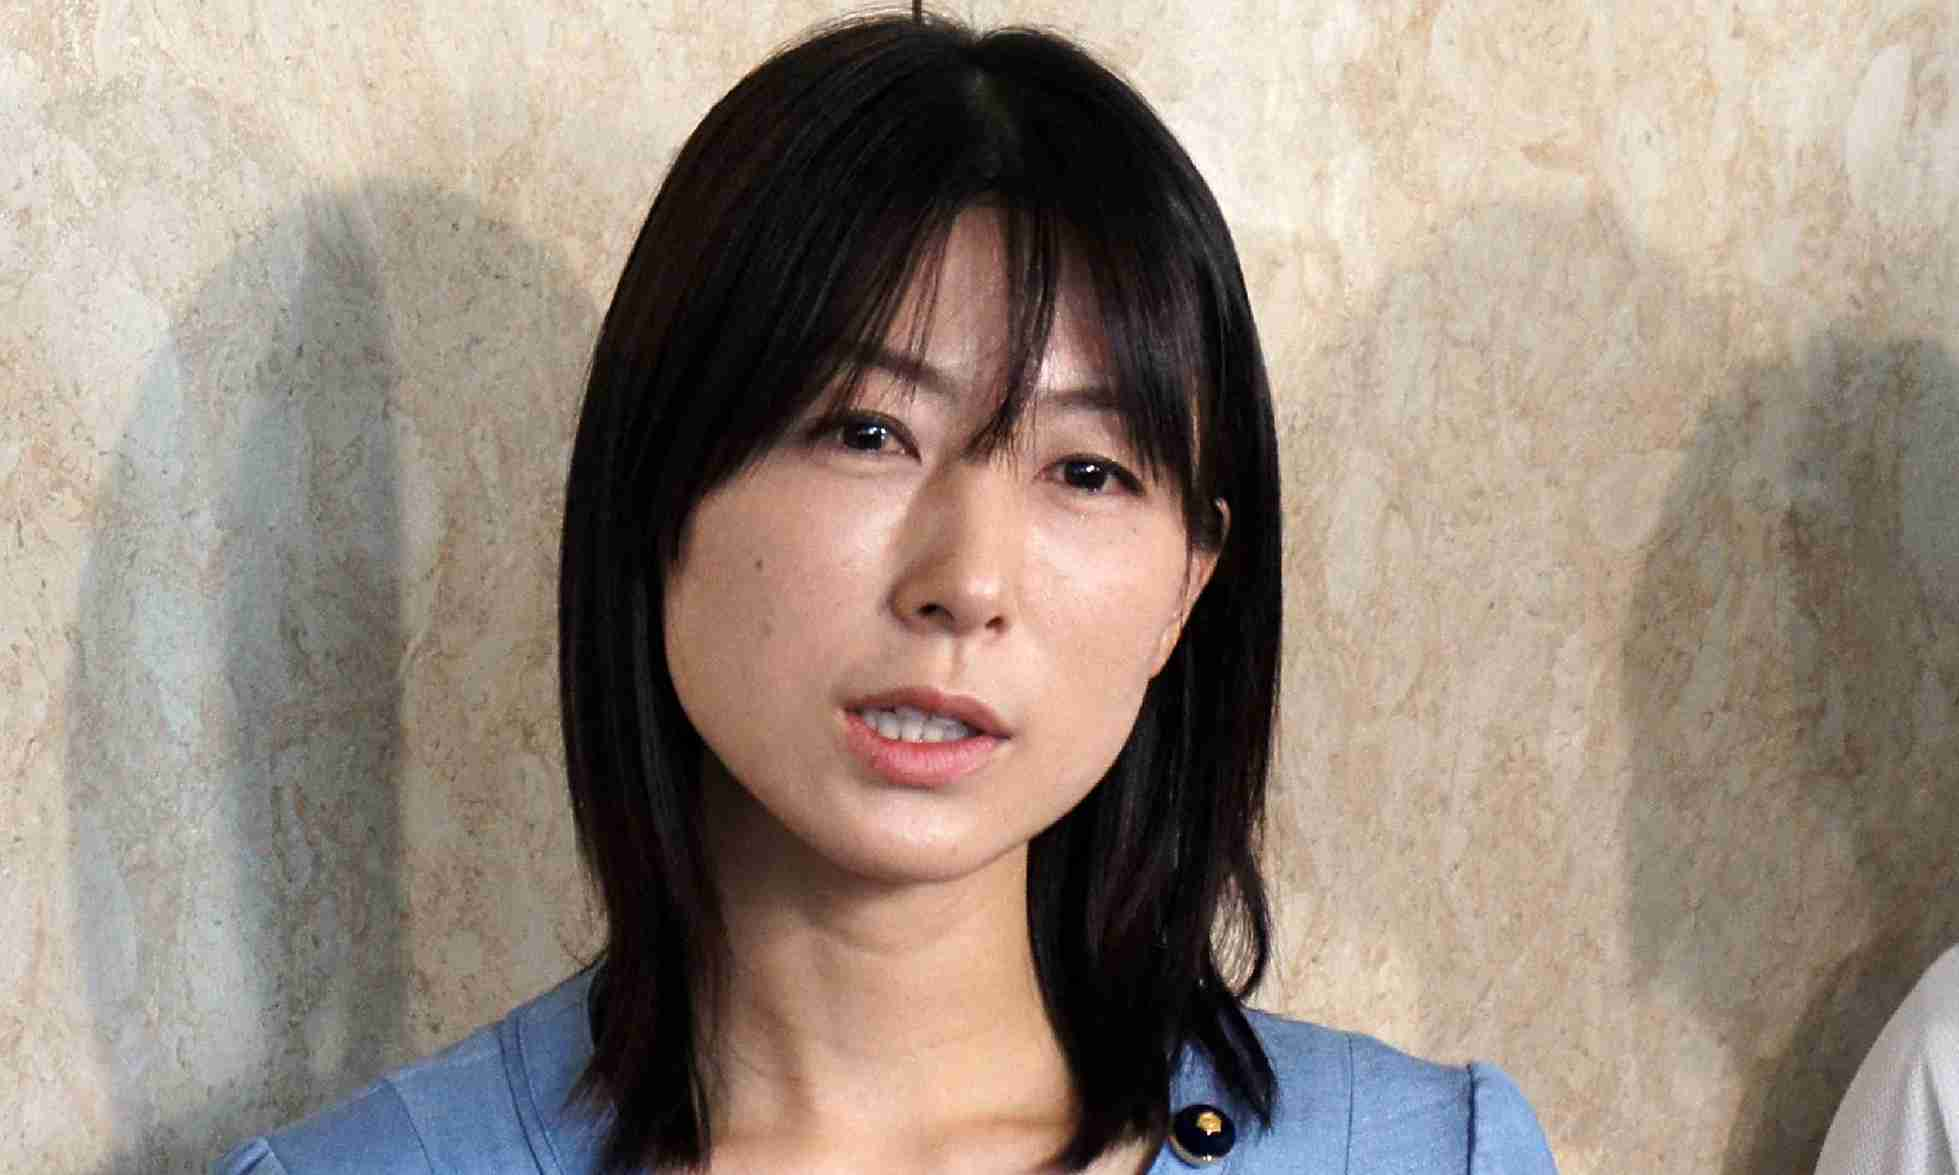 Tokyo assemblywoman subjected to sexist abuse from other members | World news | theguardian.com